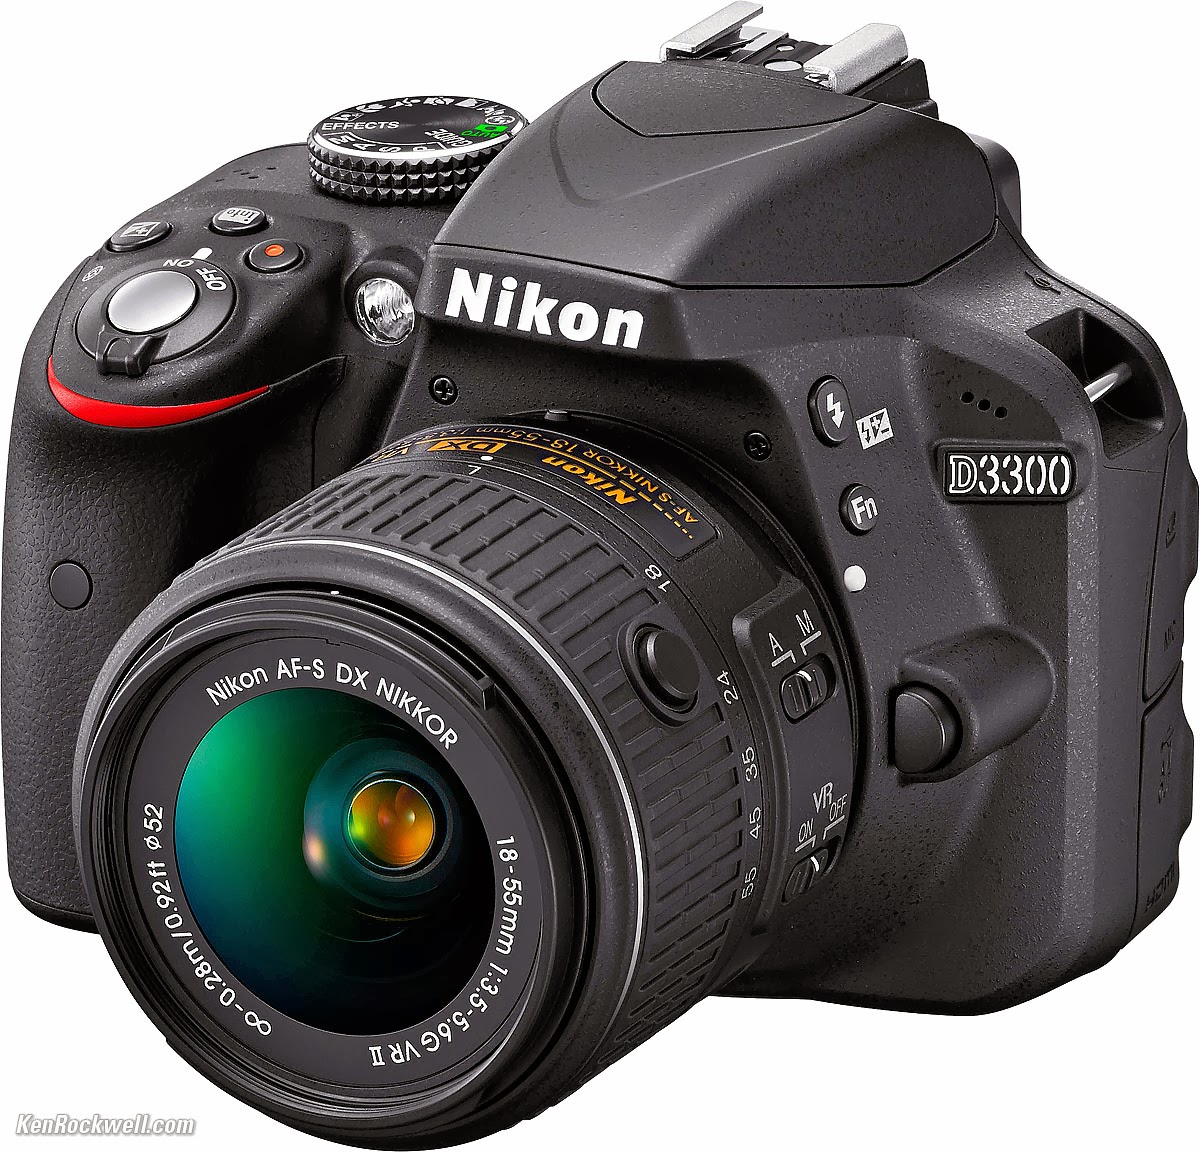 Nikon D3300, Eye-Fi, third party lens, special effects, guide mode, HD-SLR camera, entry level DSLR, new DSLR camera, Full HD video